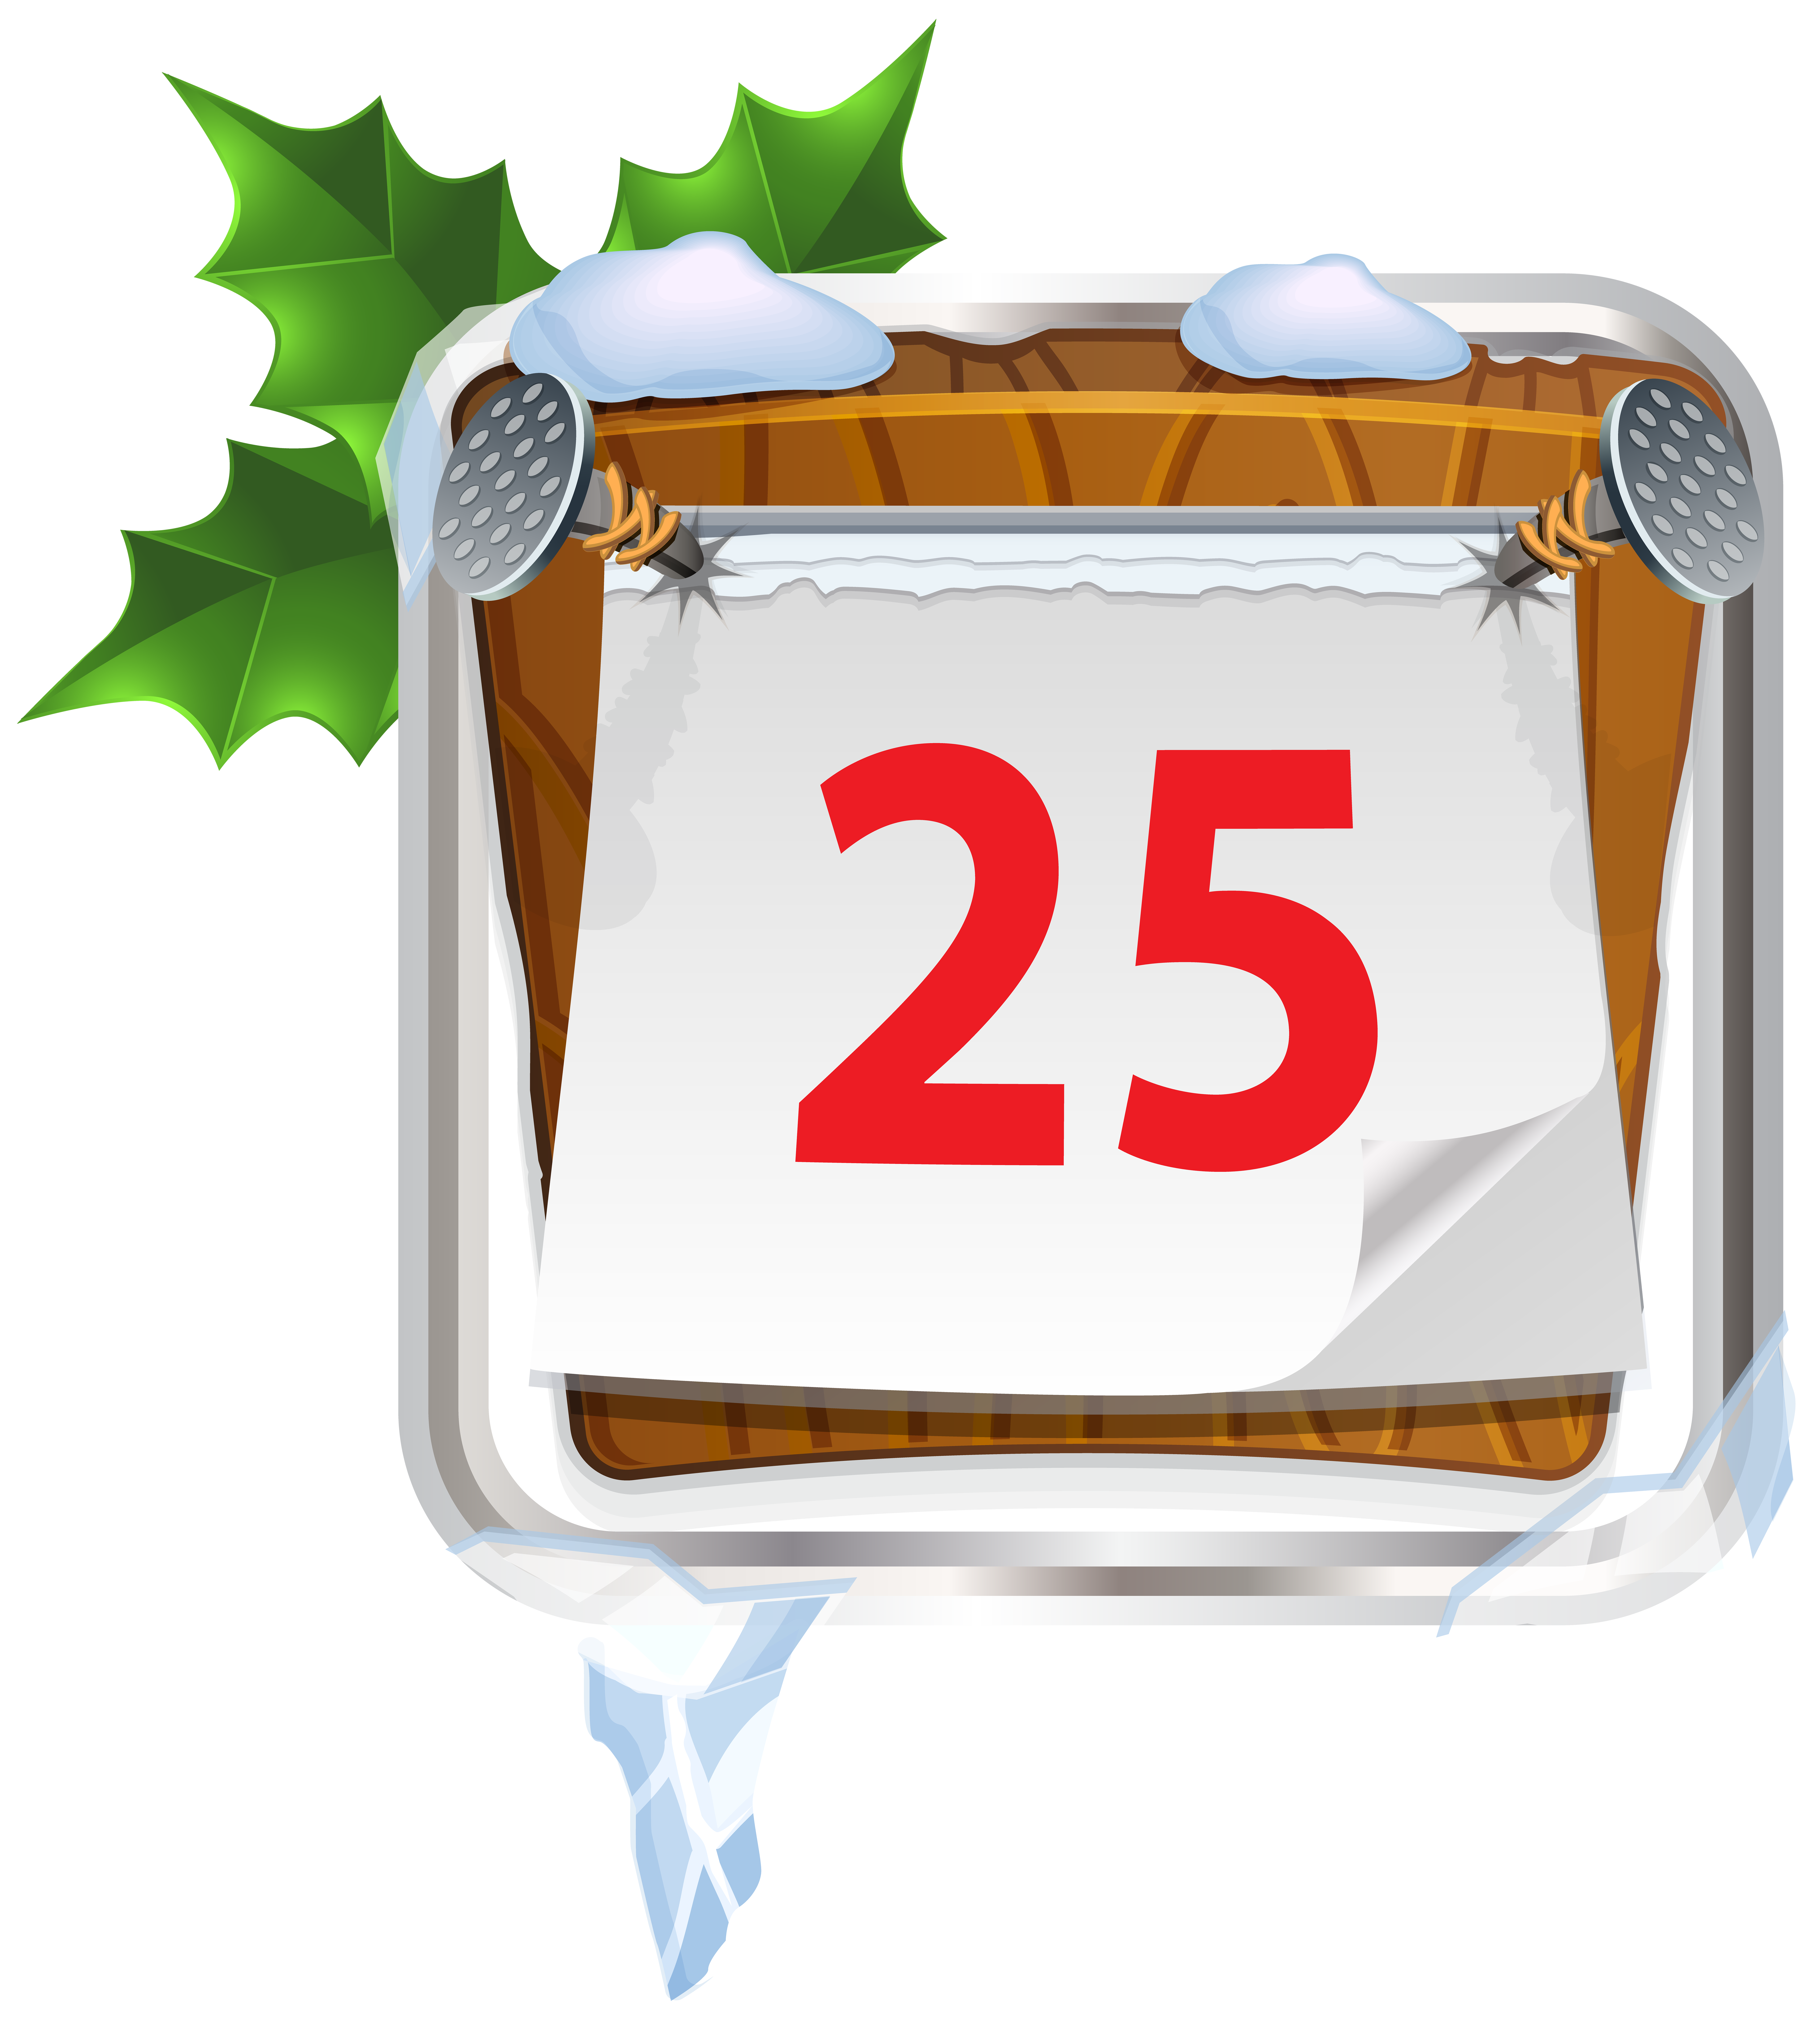 December 25 Christmas Sign PNG Clip Art Image.